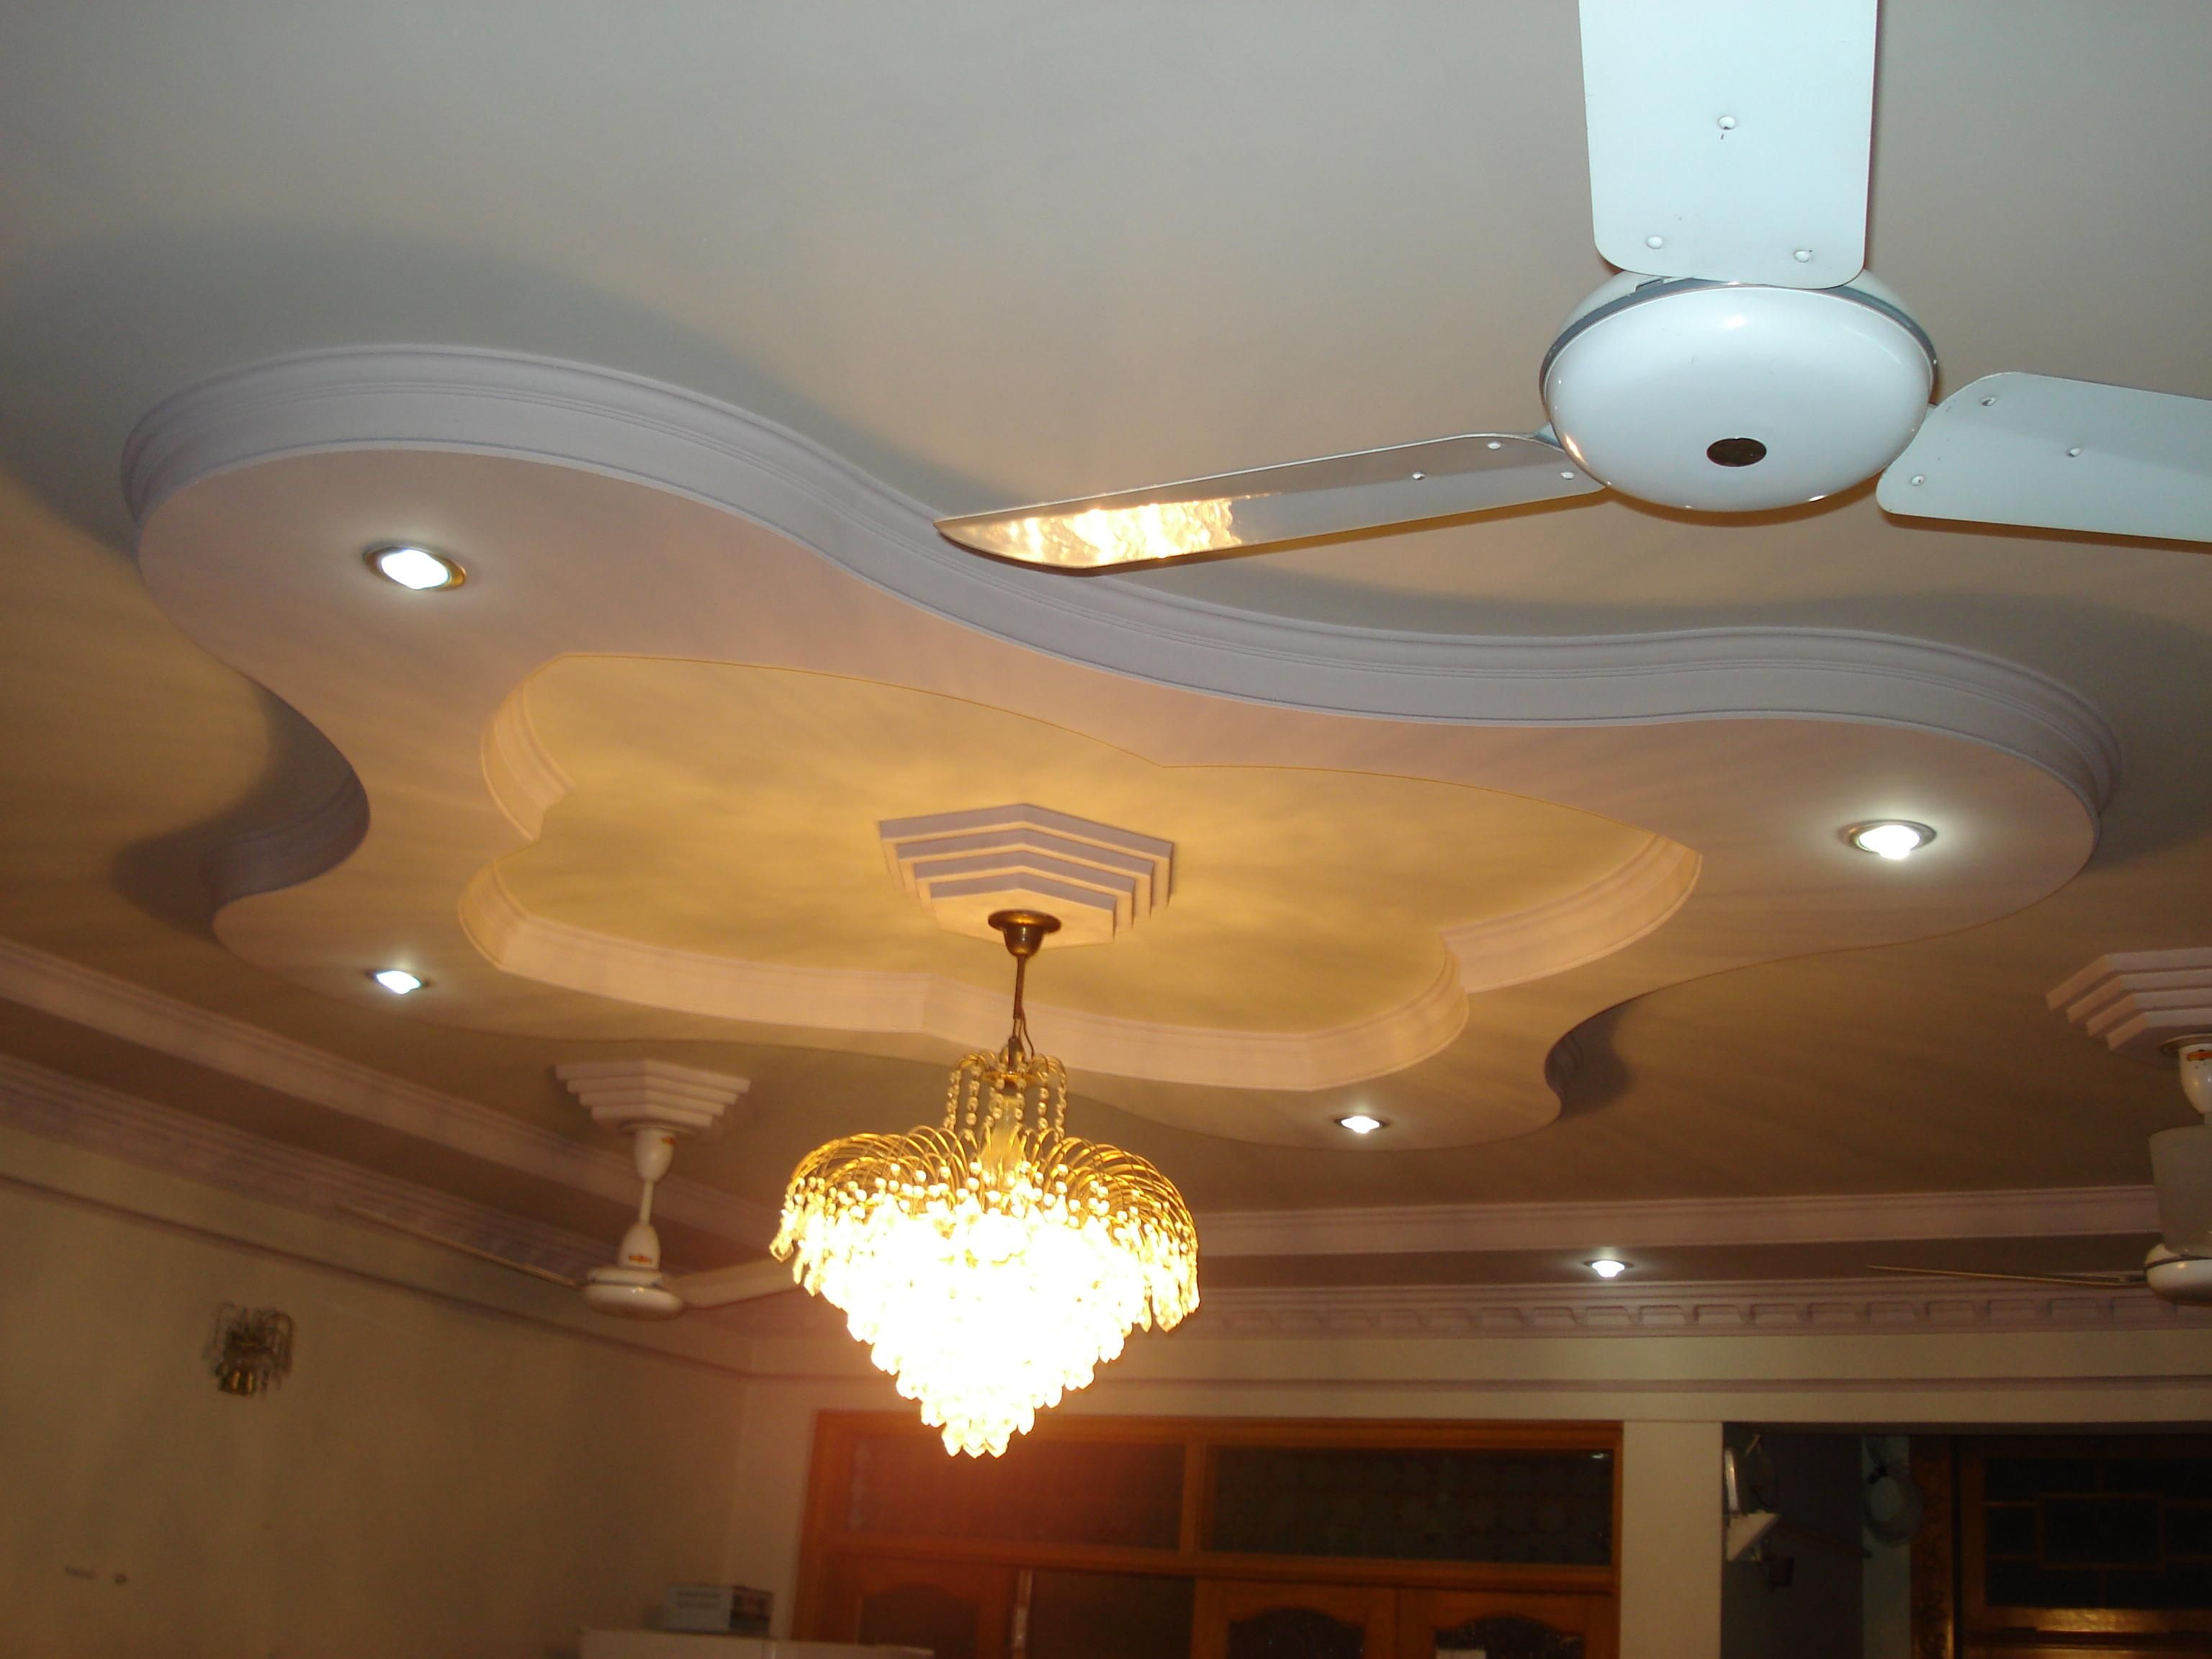 Modern false bedroom designs ceiling pop with white fan on for Plafond moderne